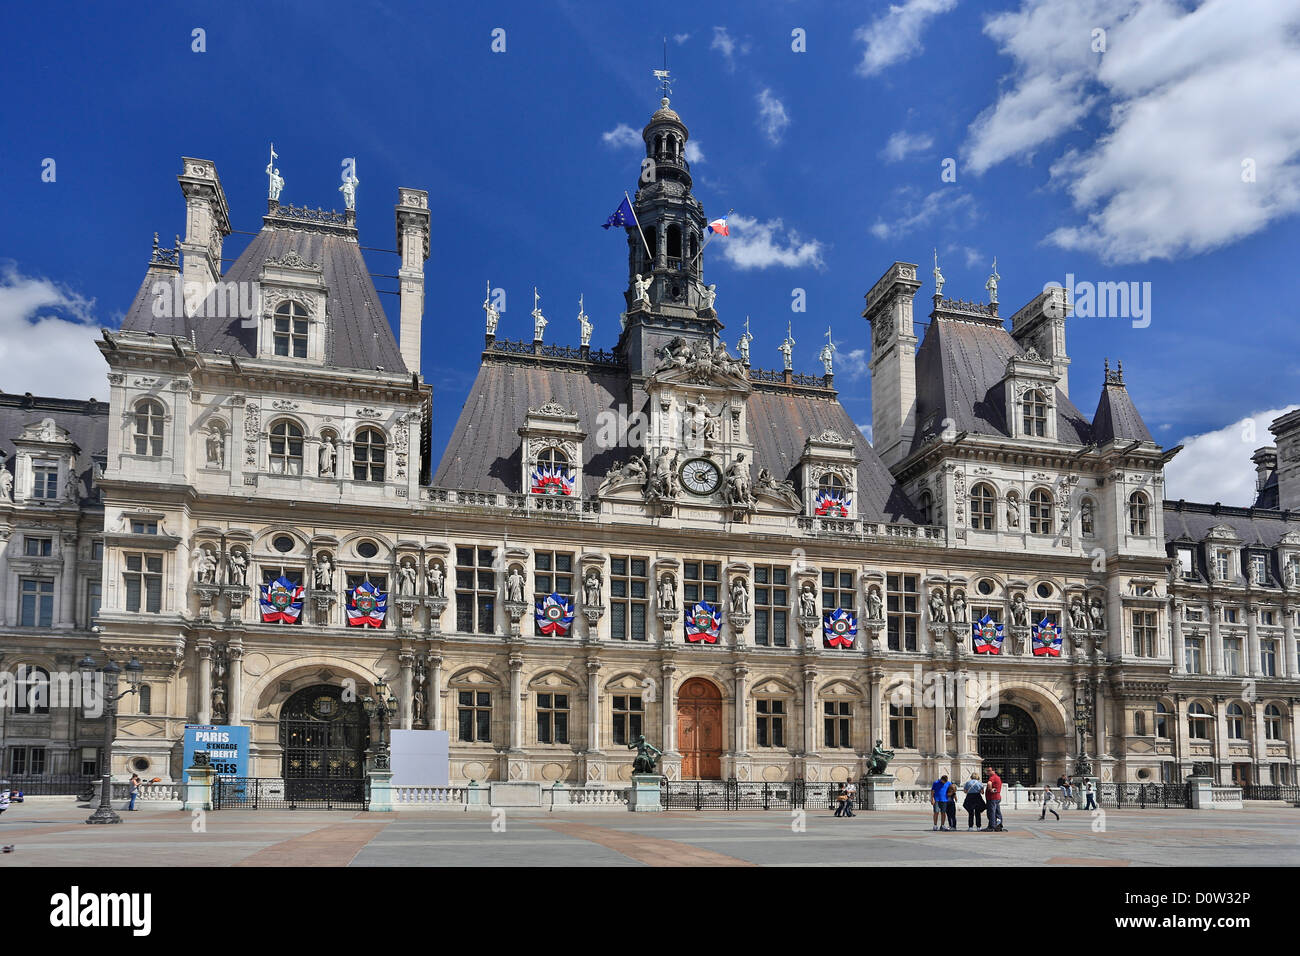 France, Europe, travel, Paris, City, City Hall, architecture, building, flags, government, roof, square - Stock Image